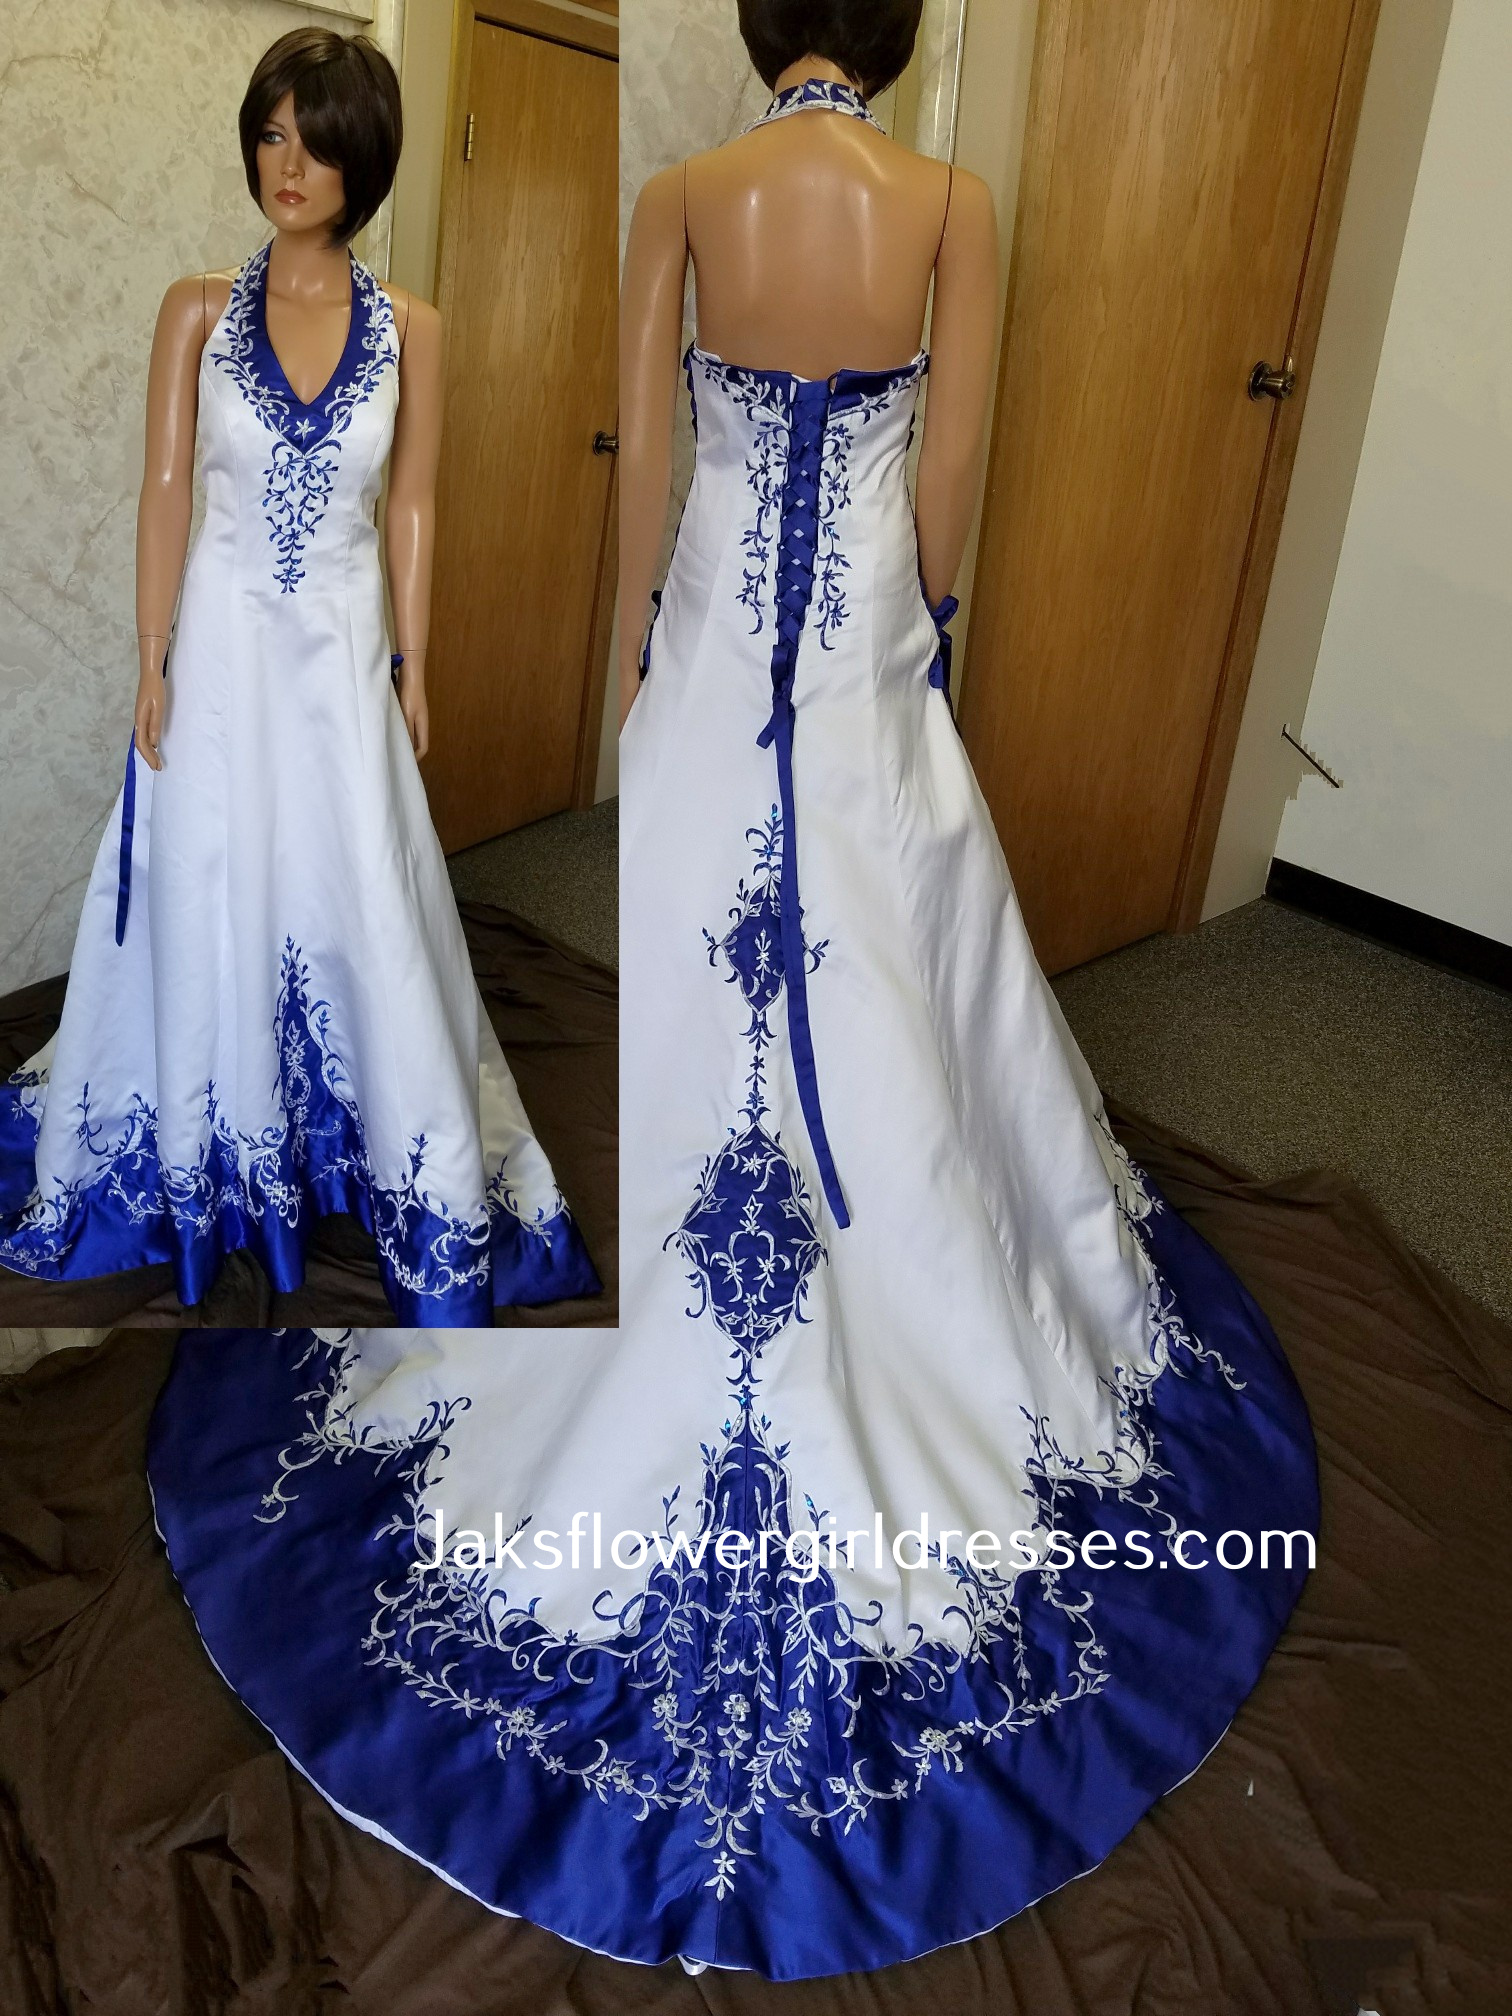 Looking for a bridal gown in a non-traditional color or with a touch of color?  White wedding dresses with color accents and color accents bridal gowns.